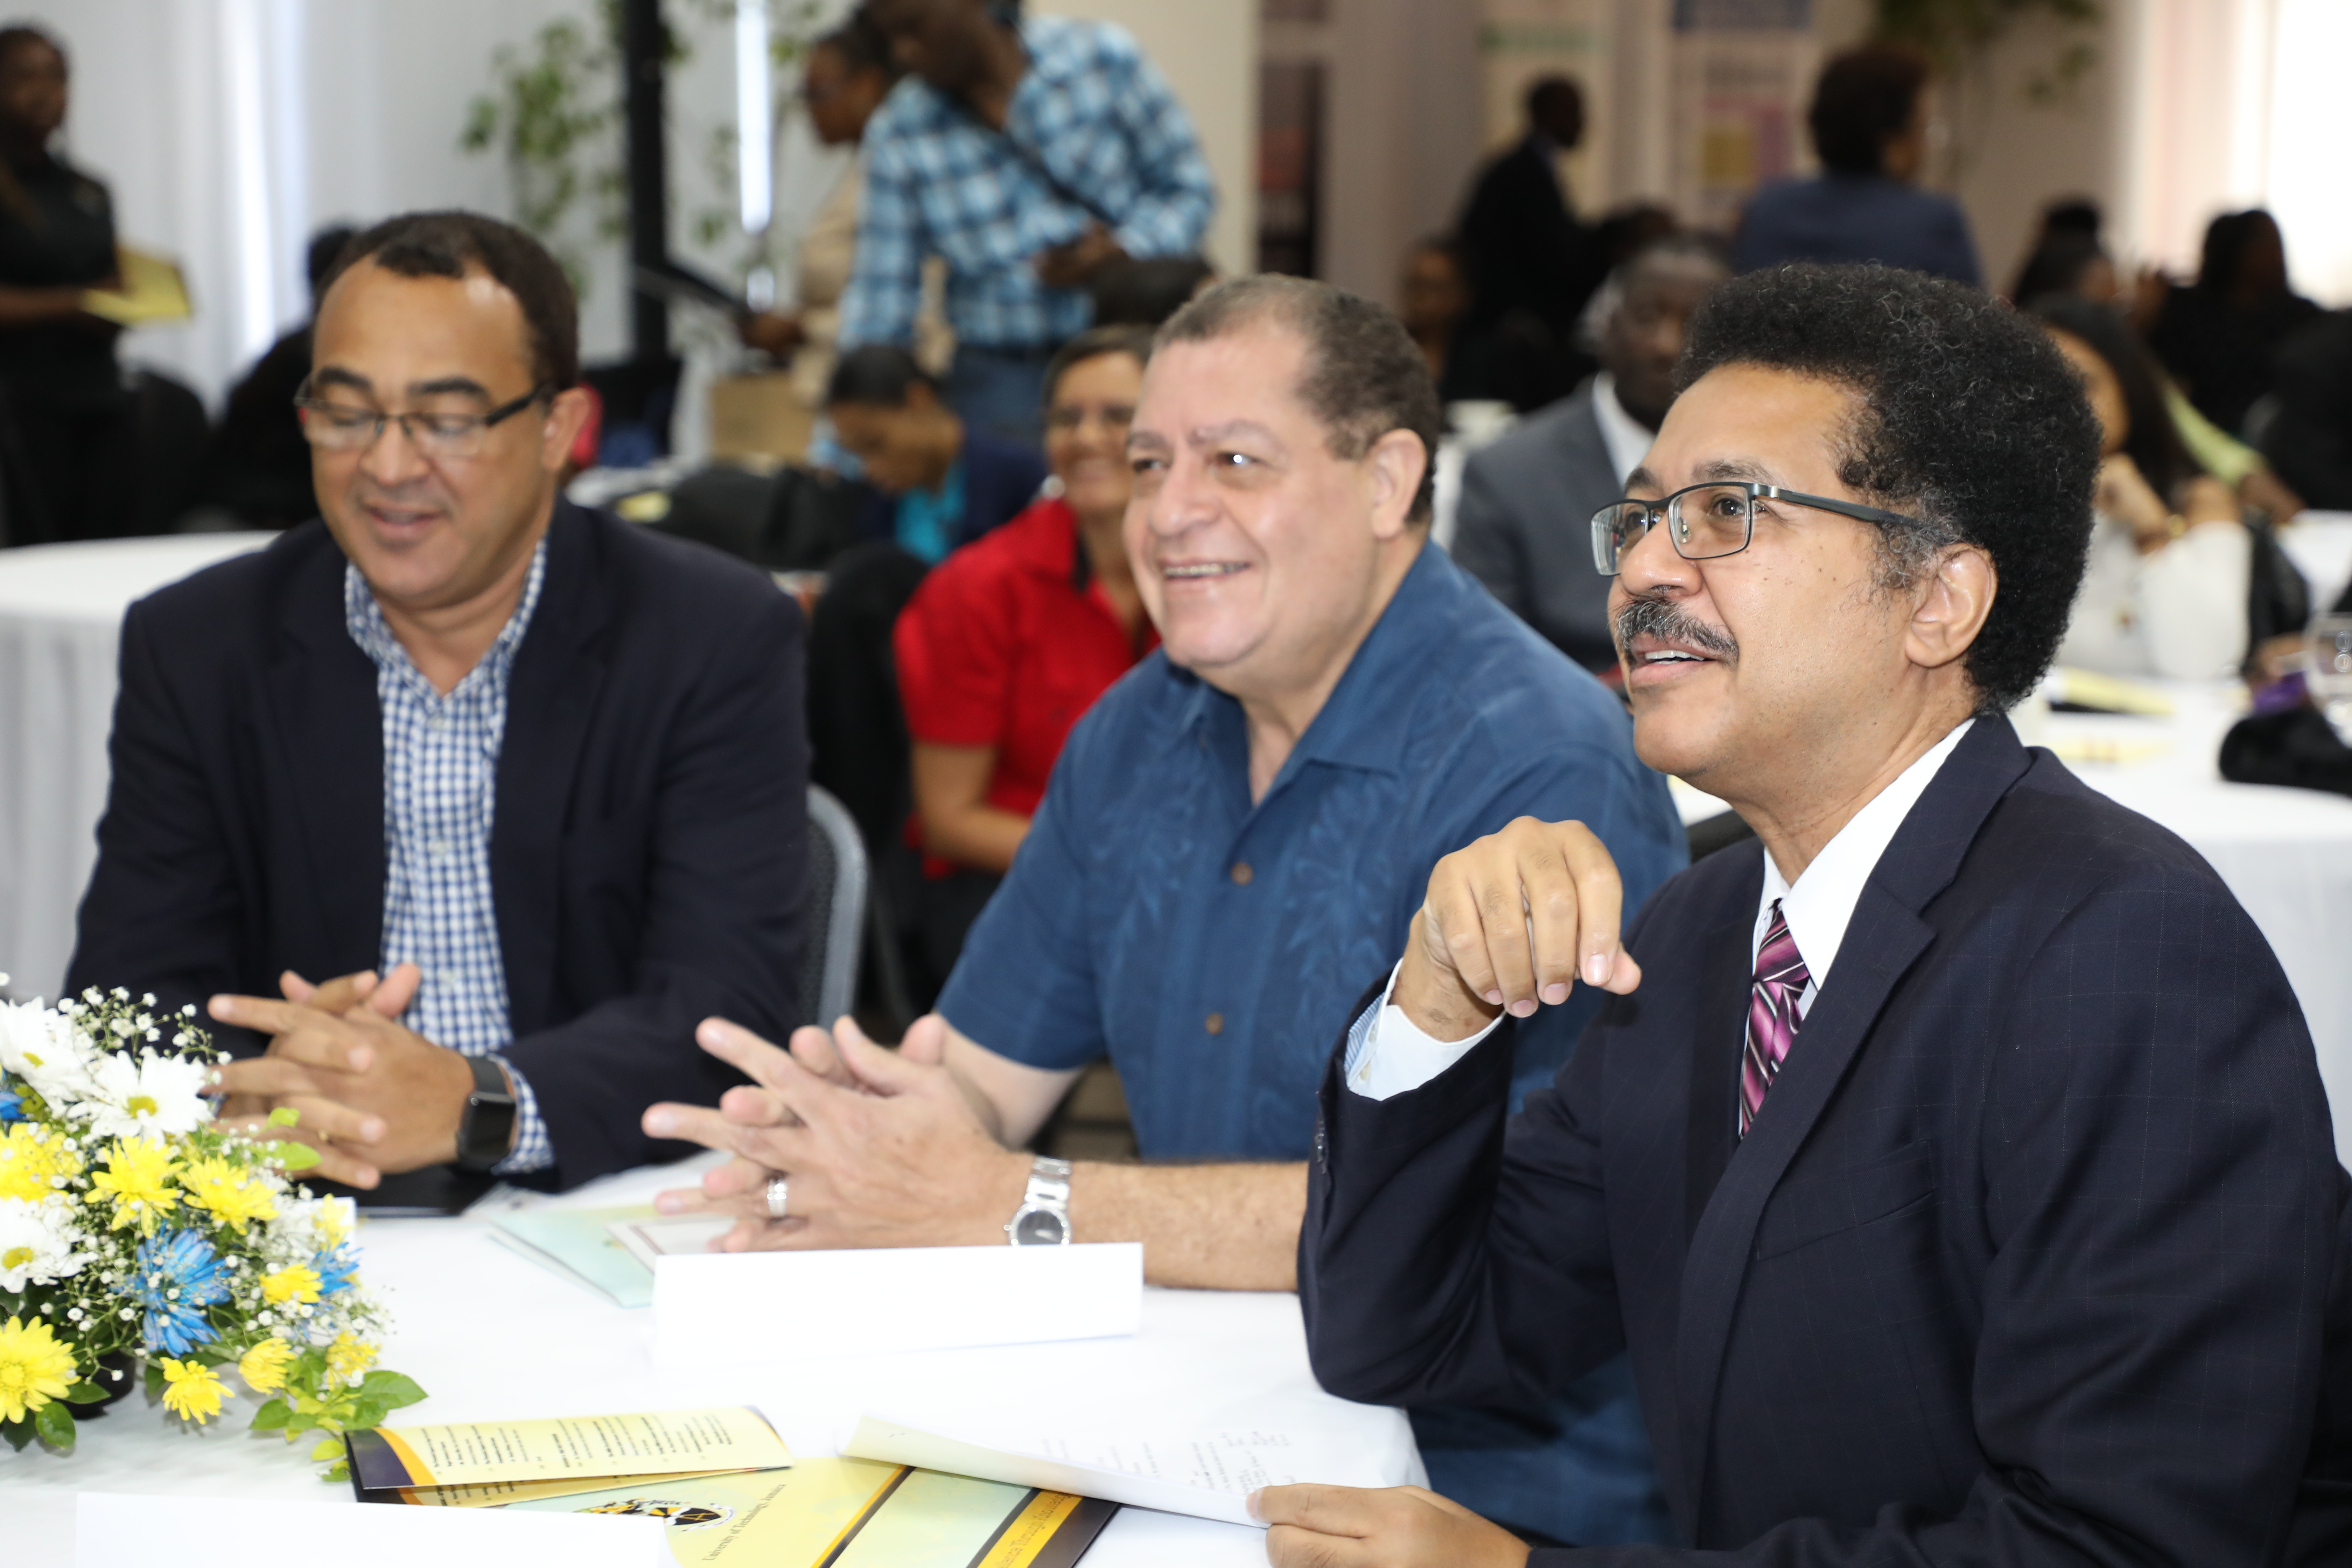 UTech, Jamaica Scientific Symposium Presents Compelling Evidence for Introduction of Tax on Sugar-Sweetened Beverages